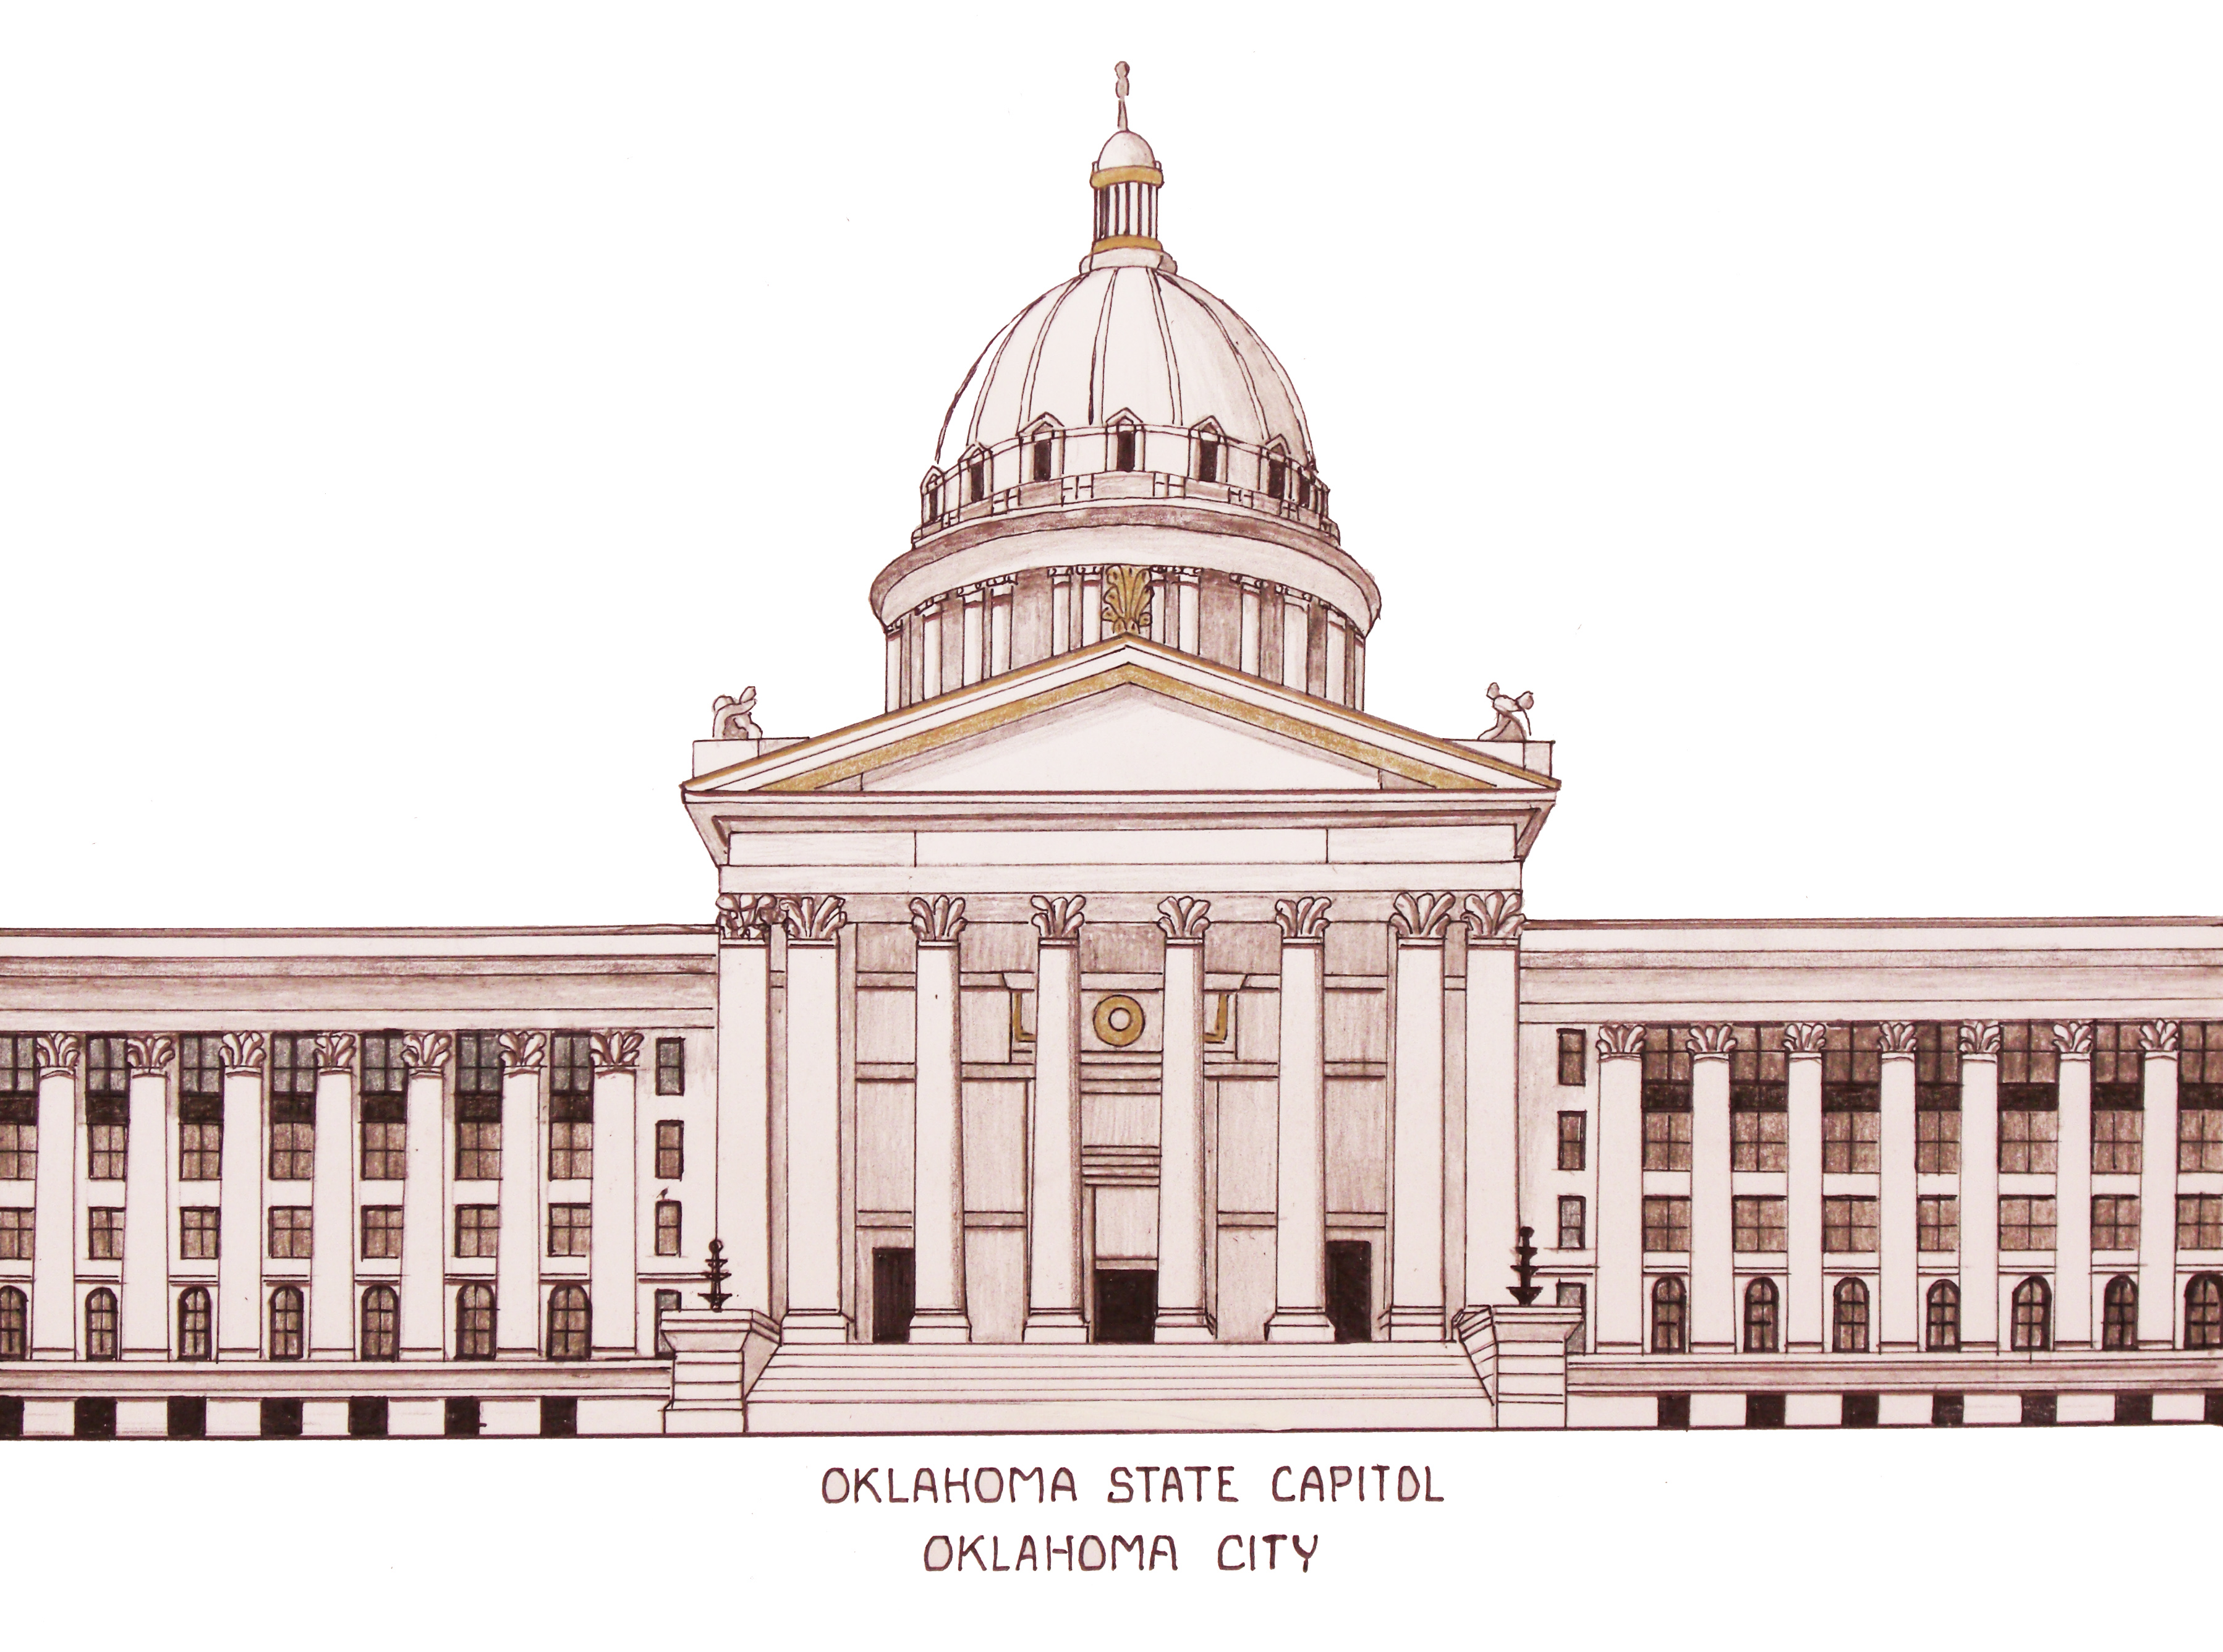 Government building drawing at getdrawings free for personal 3596x2672 oklahoma state capitol building in oklahoma city more info malvernweather Gallery